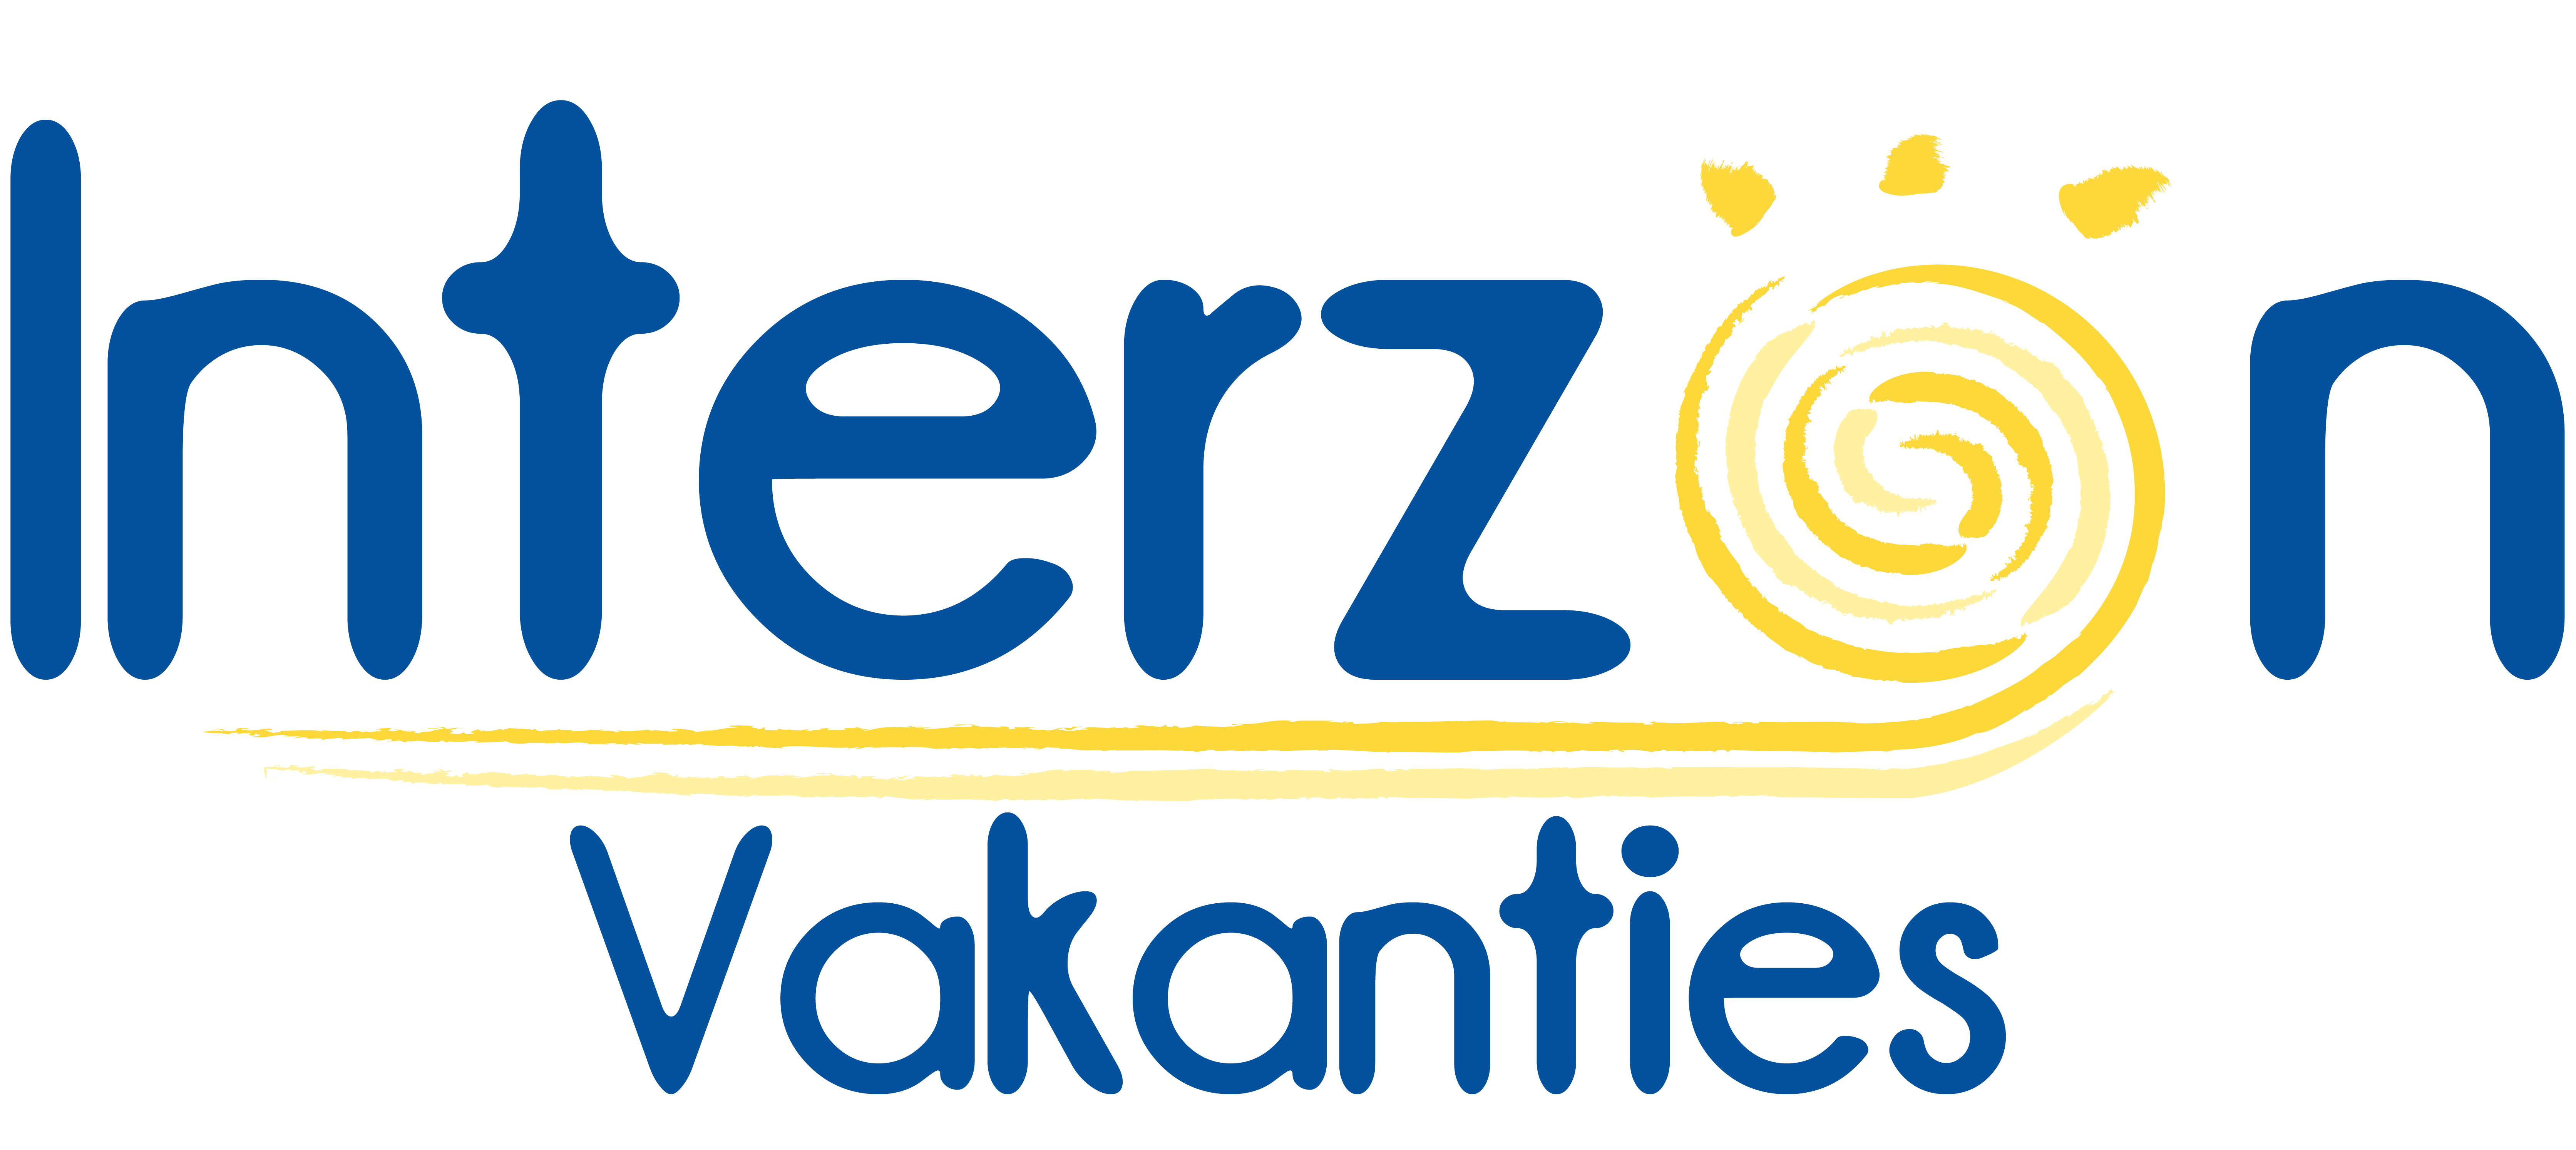 Interzon-logo